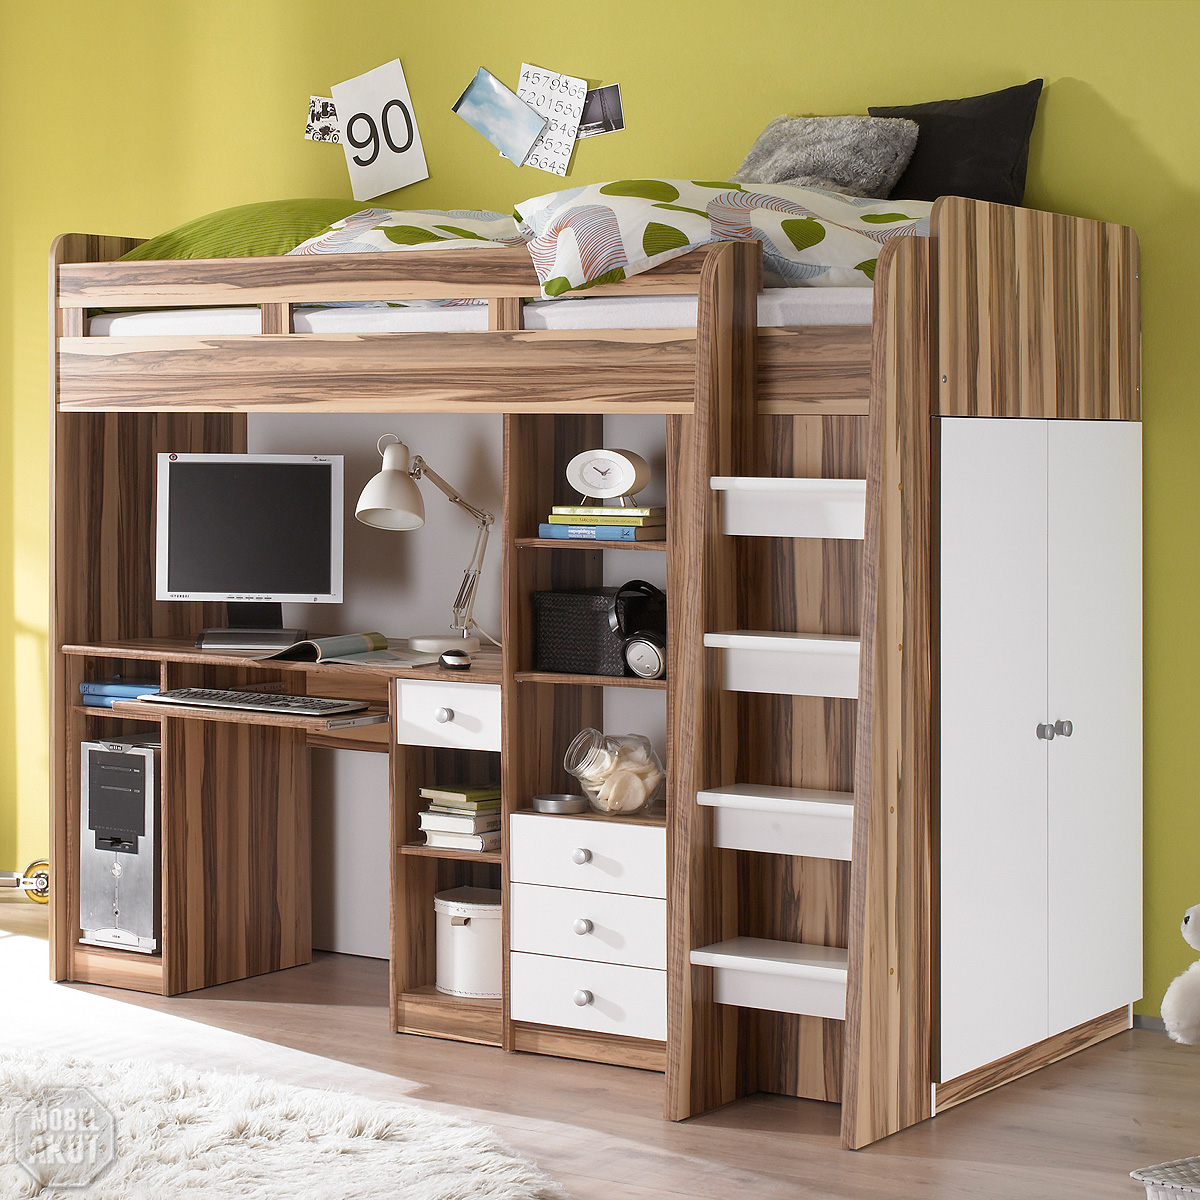 hochbett unit etagenbett kinderbett bett in baltimore walnuss und wei 90x200 cm ebay. Black Bedroom Furniture Sets. Home Design Ideas